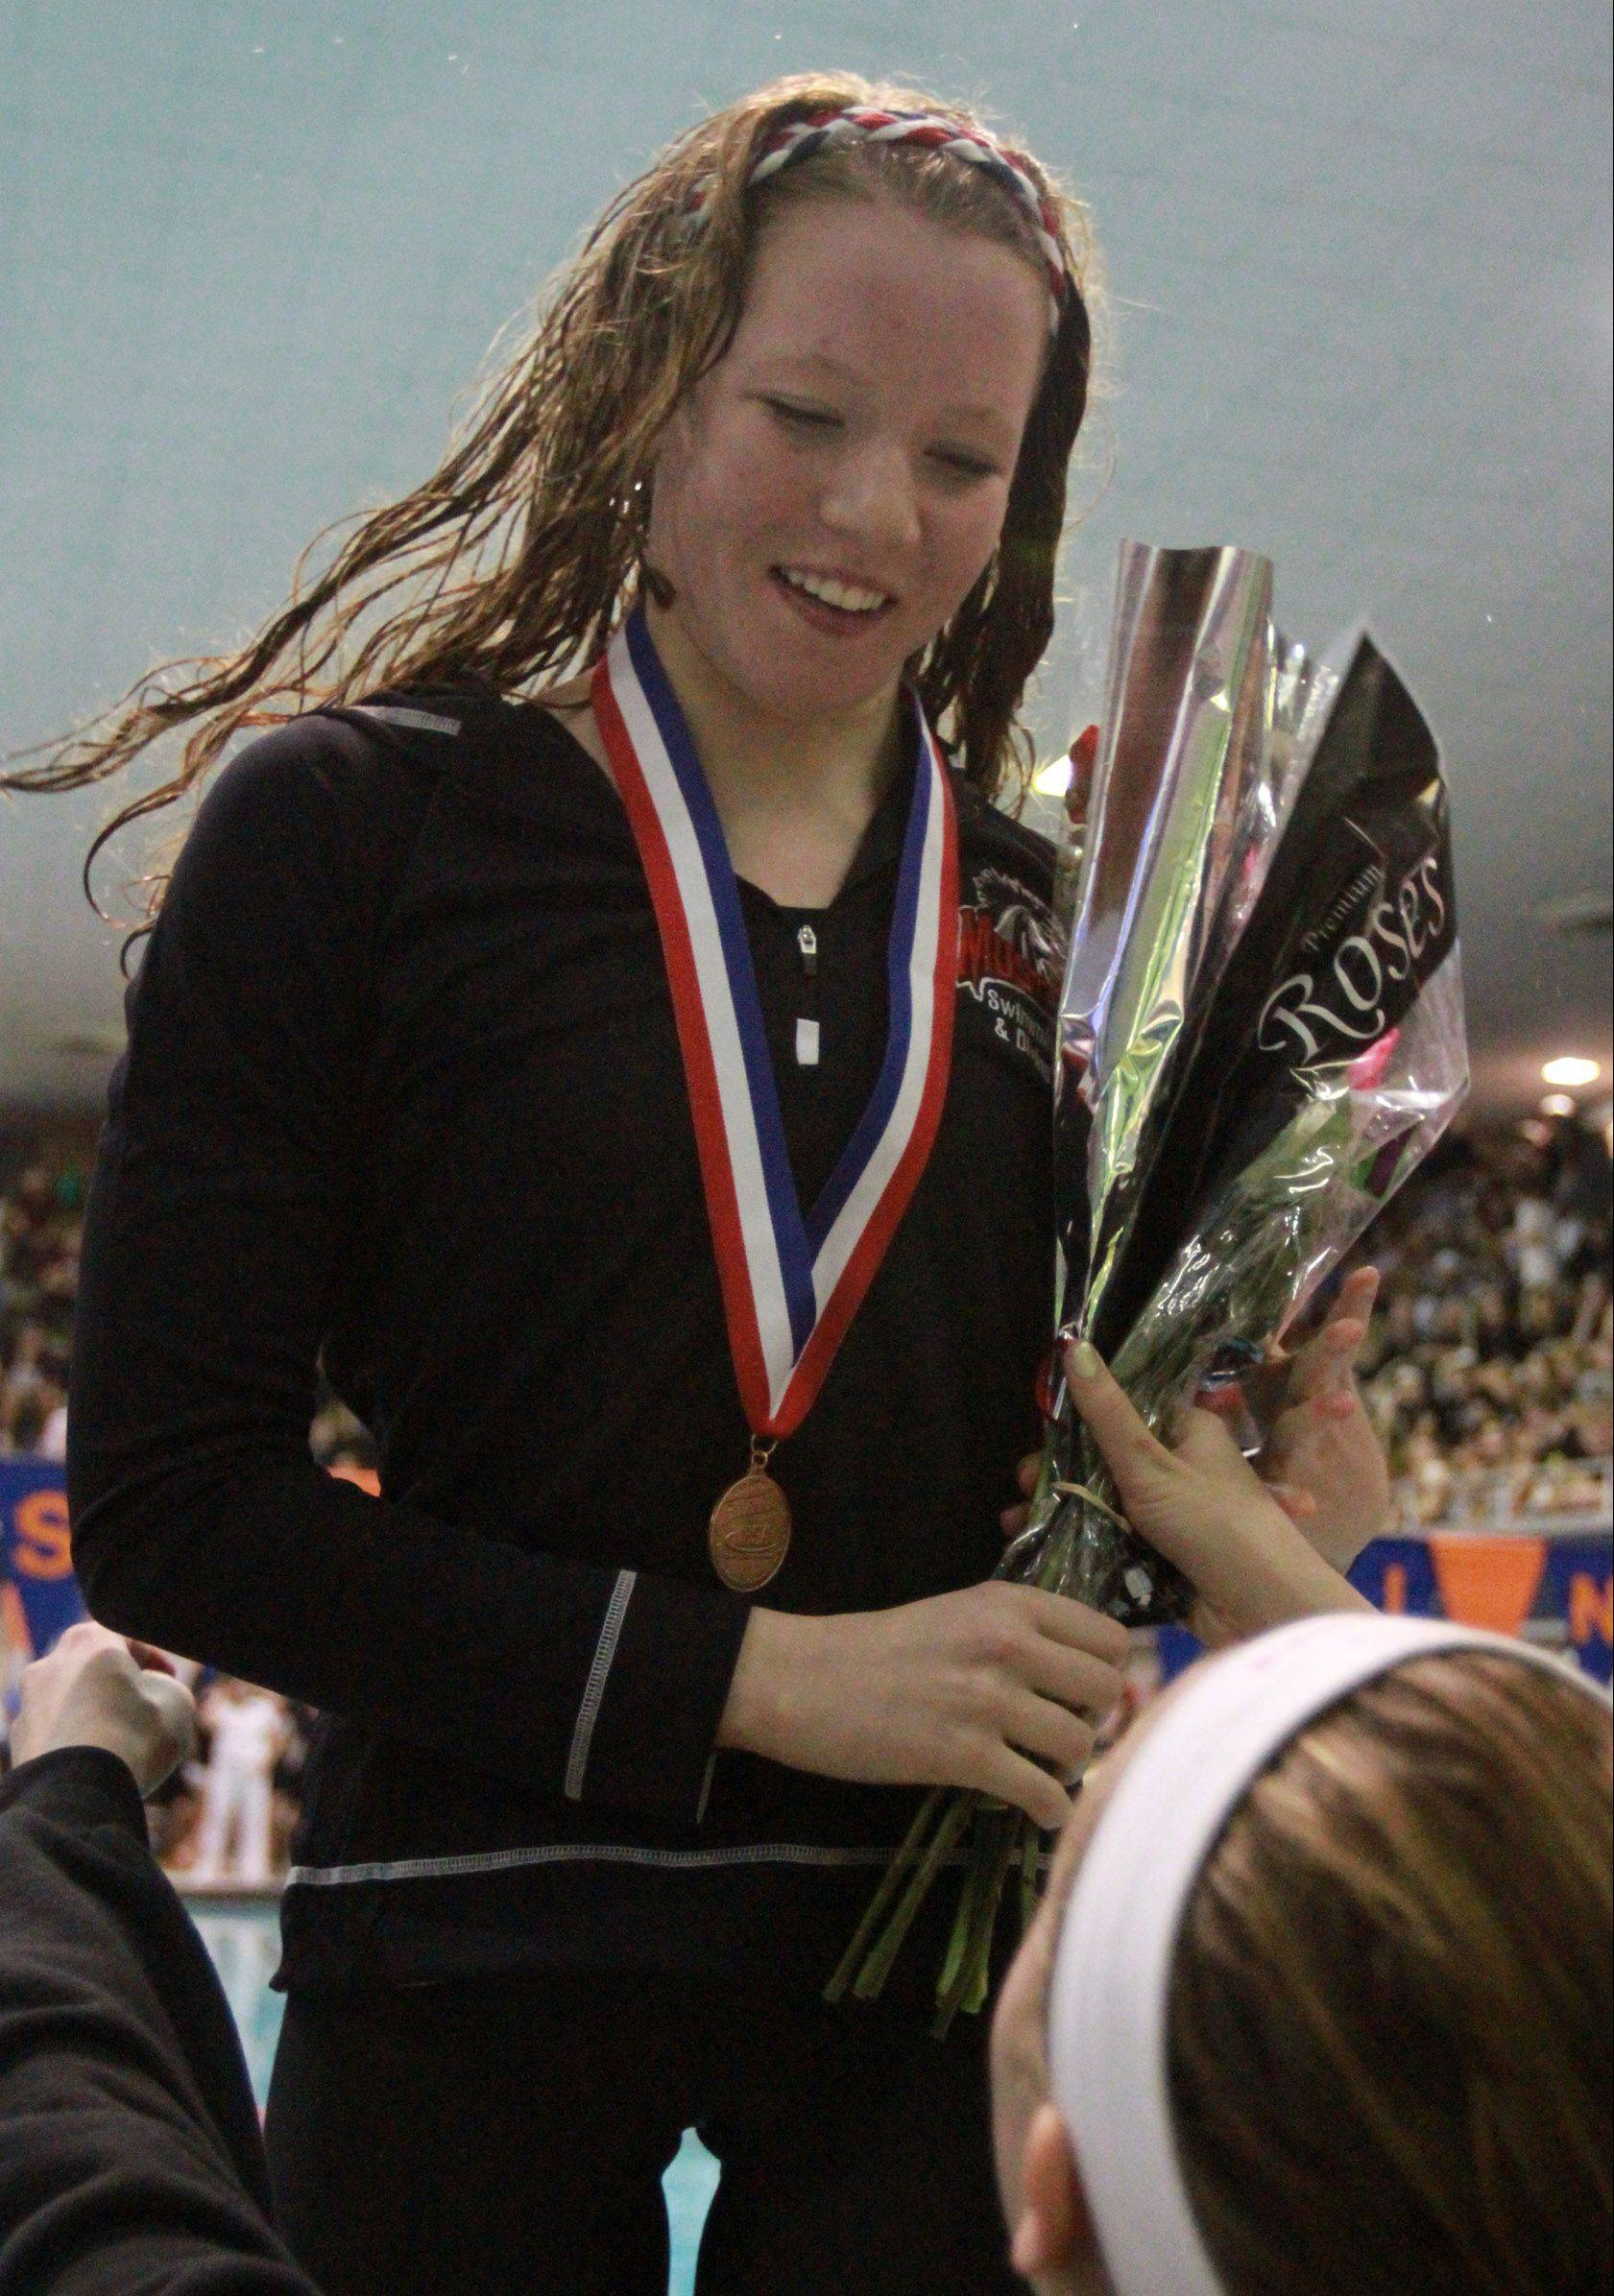 Mundelein's Erin Falconer placed fourth in the 200-yard freestyle at the IHSA state finals in Evanston on Saturday.